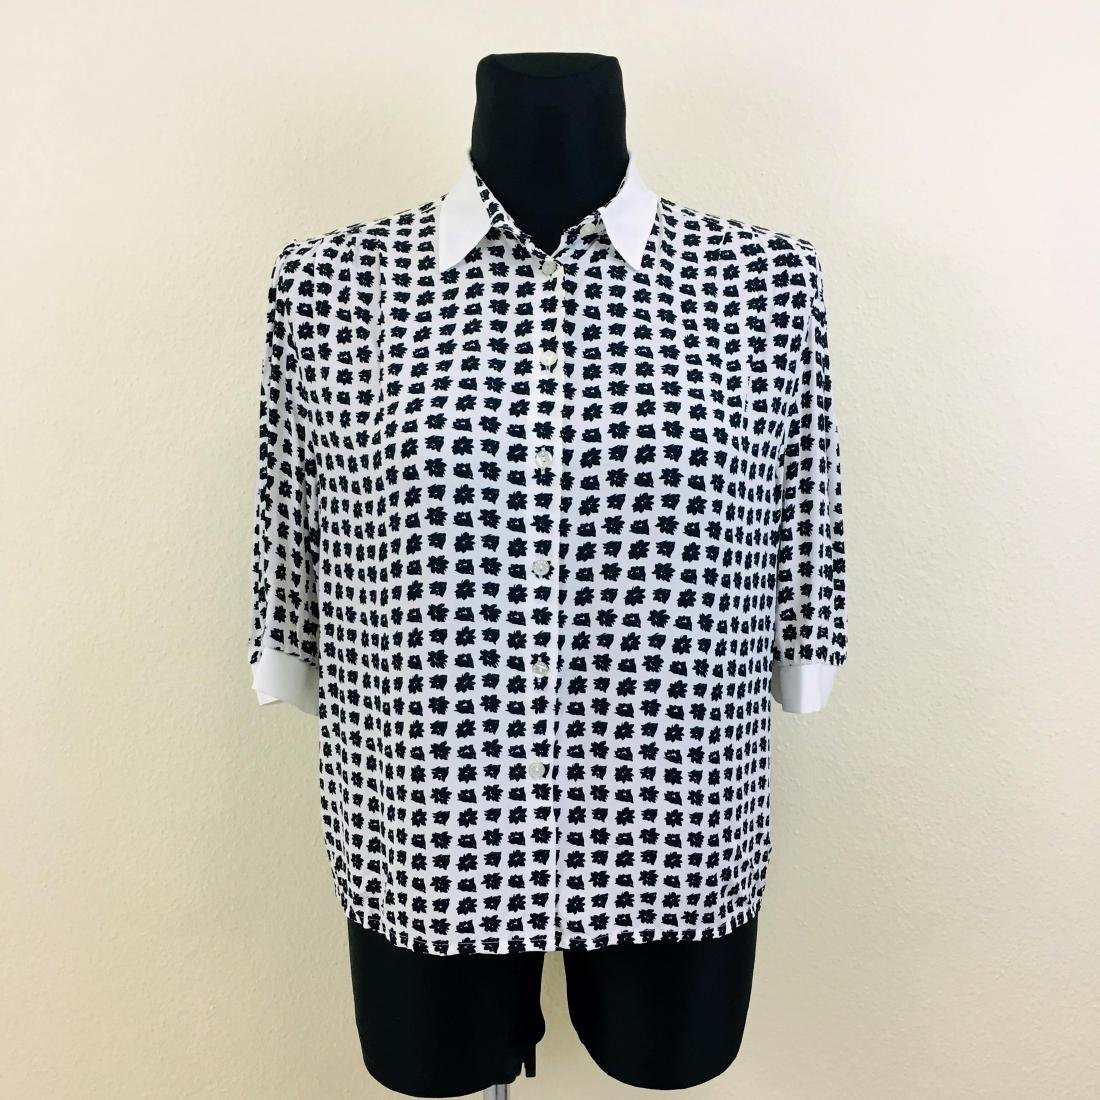 Vintage Women's German Designer Top Blouse